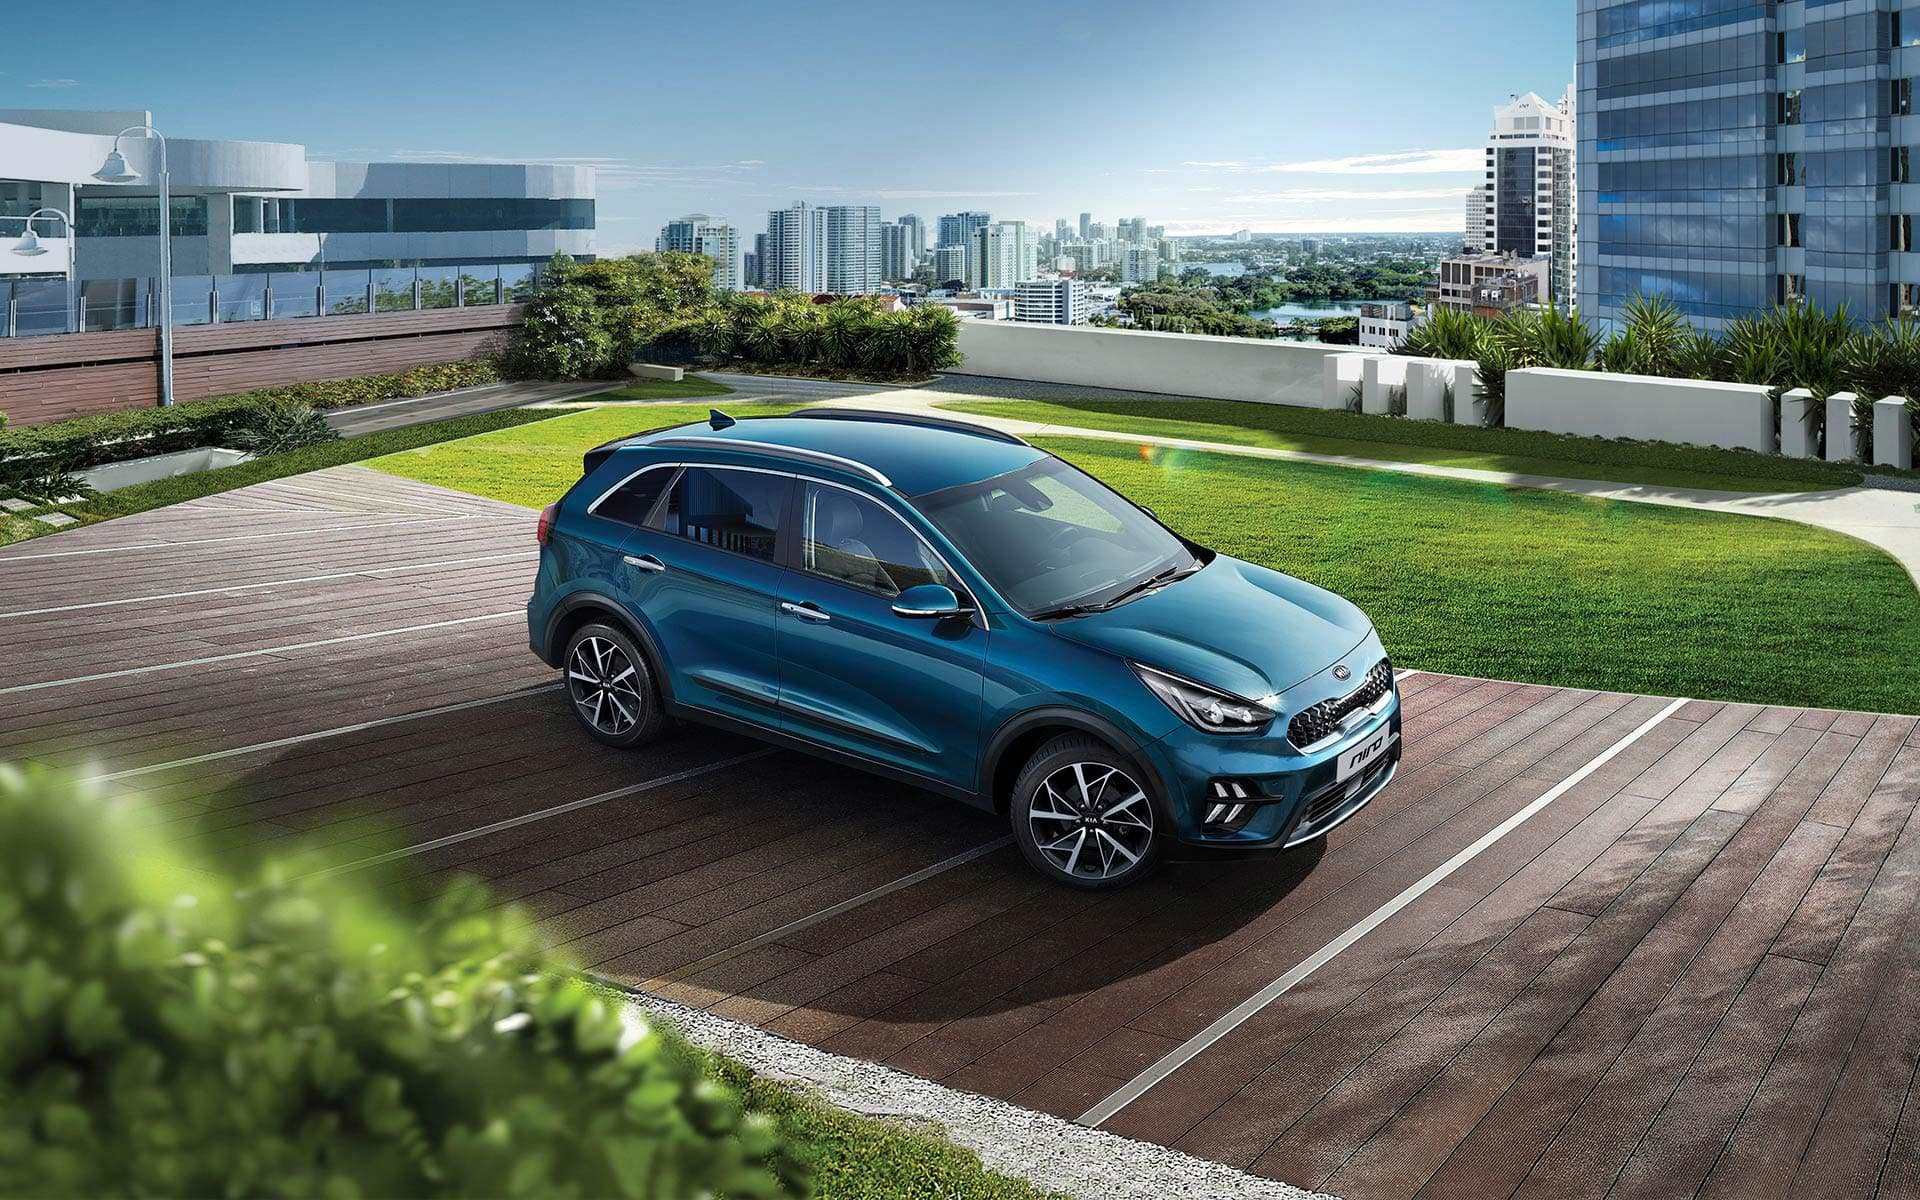 KIA Niro crossover-design